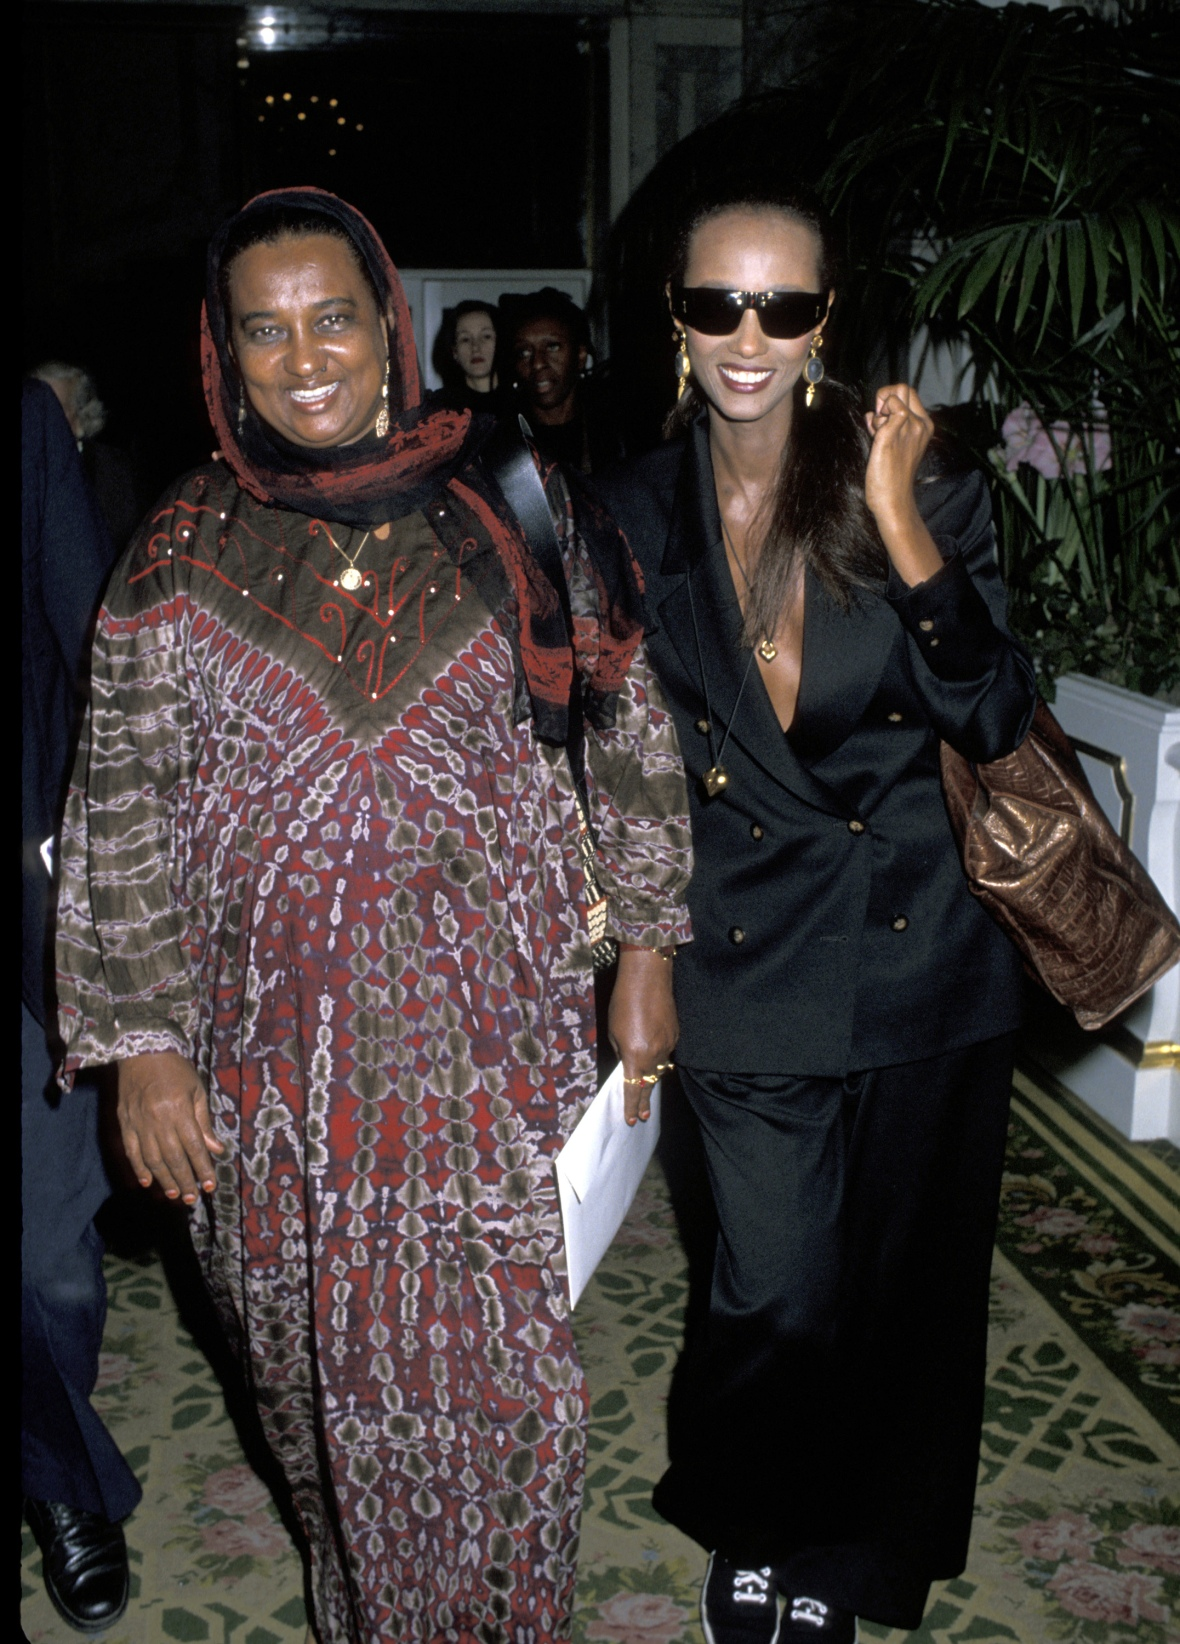 iman mother getty images